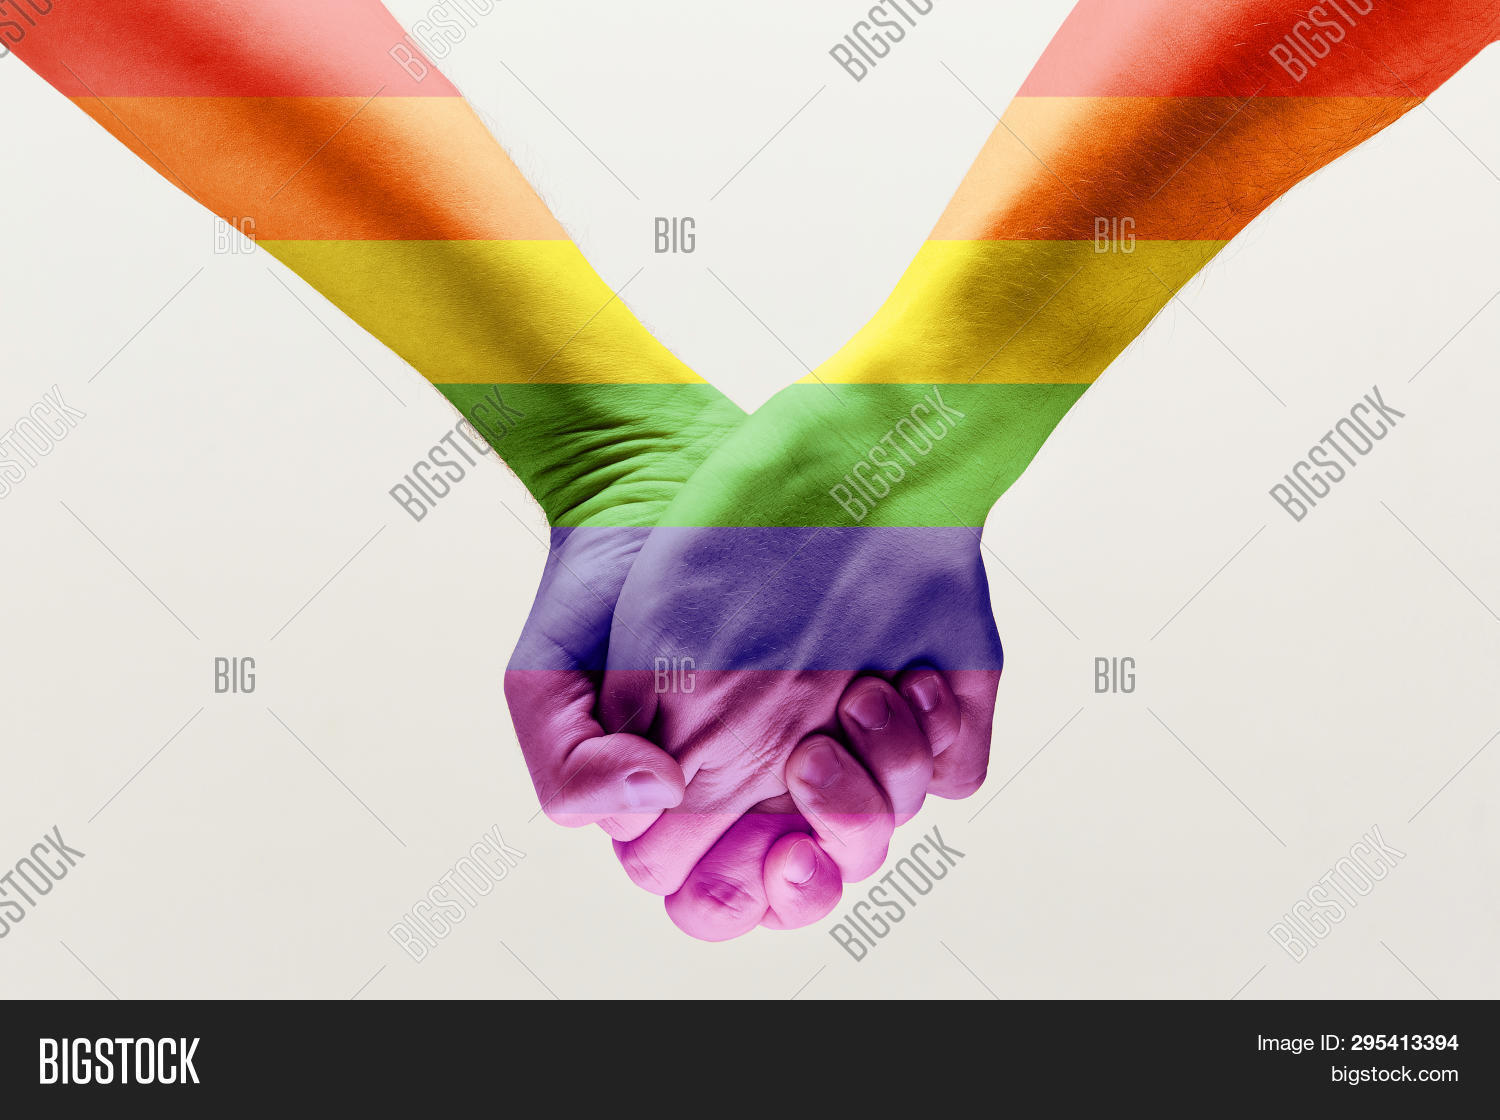 Right To Choose Your Own Way. Loseup Shot Of A Gay Couple Holding Hands, Patterned As The Rainbow Fl